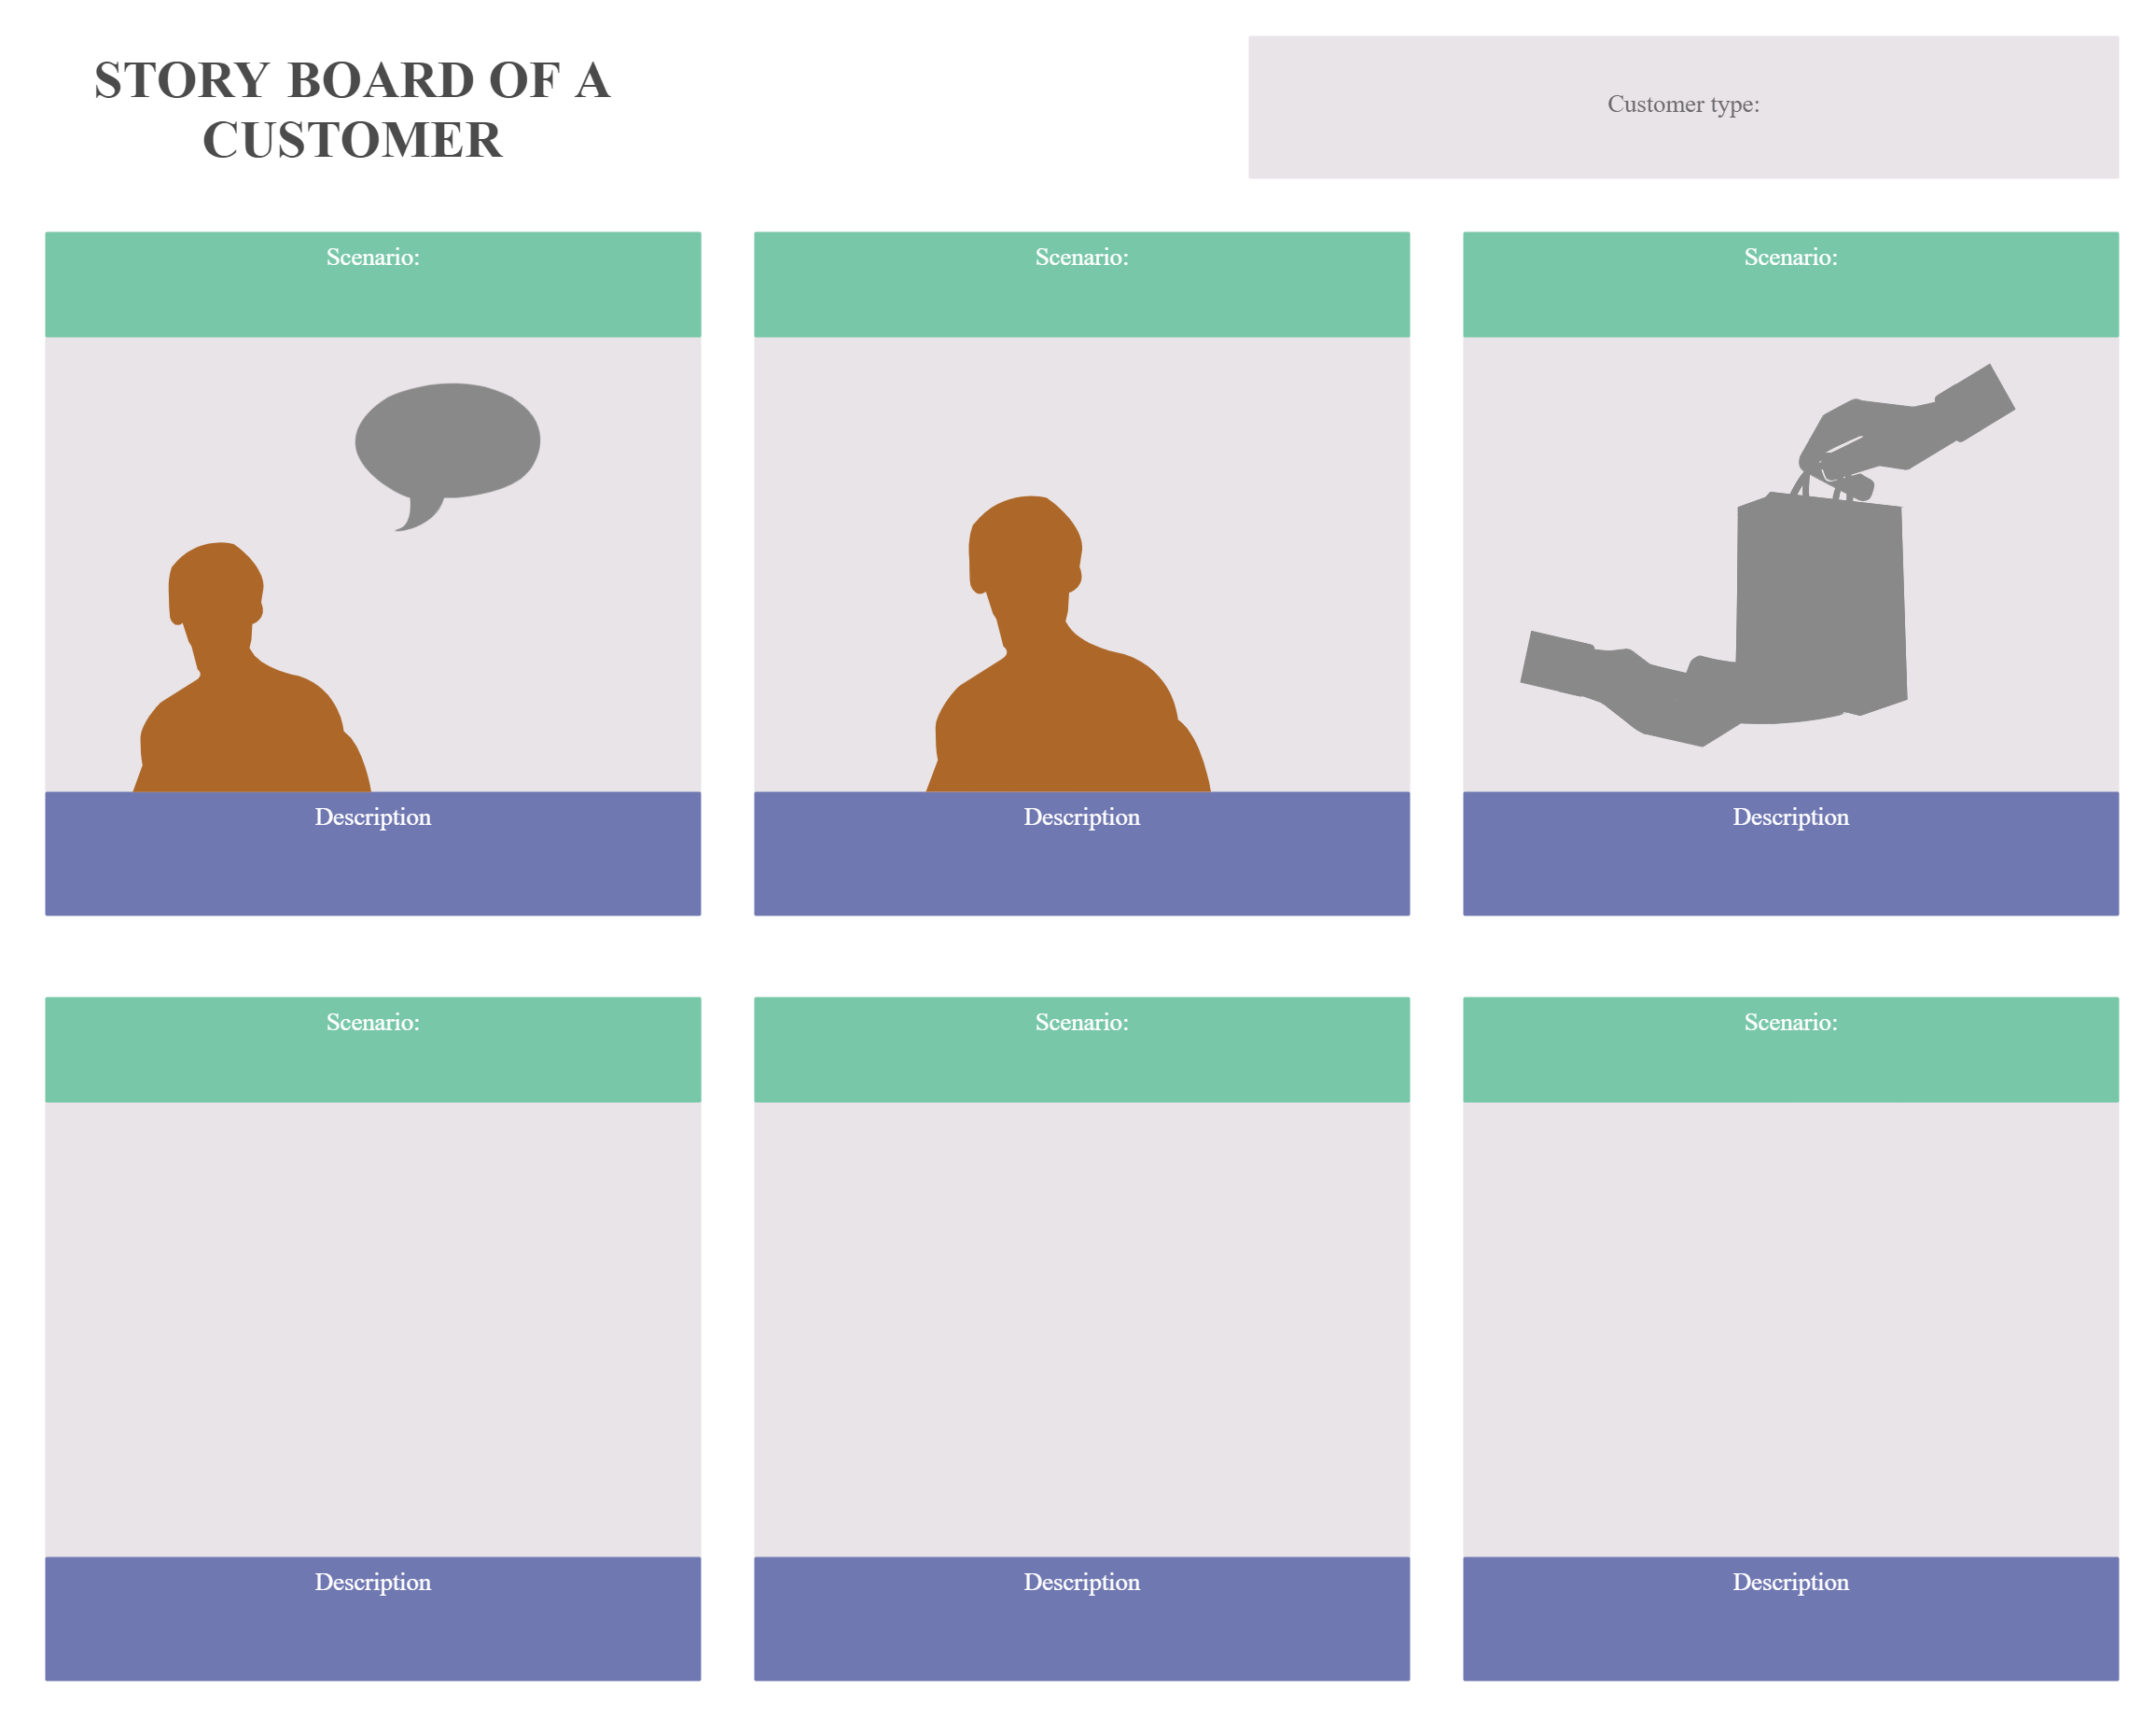 Example of a Story Board